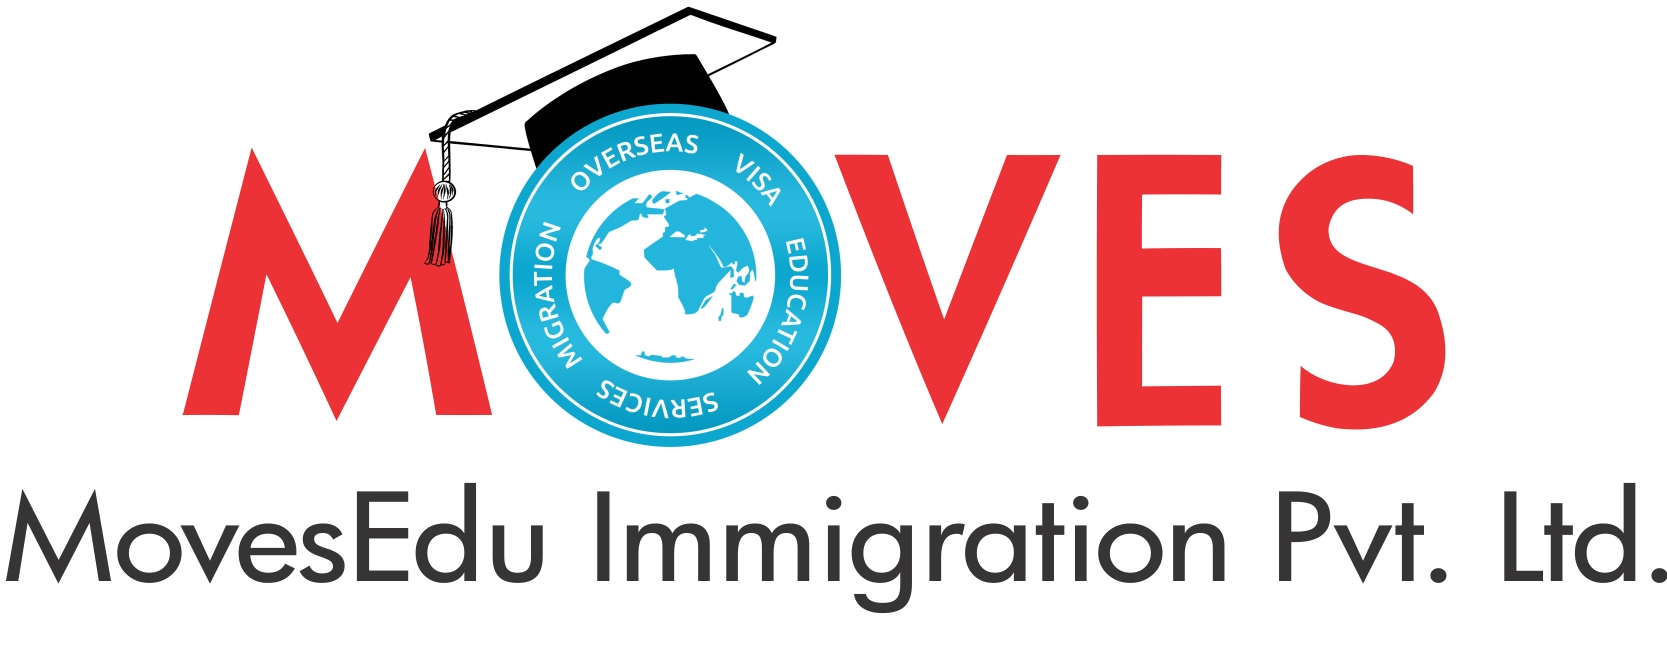 MovesEdu Immigration Pvt. Ltd.